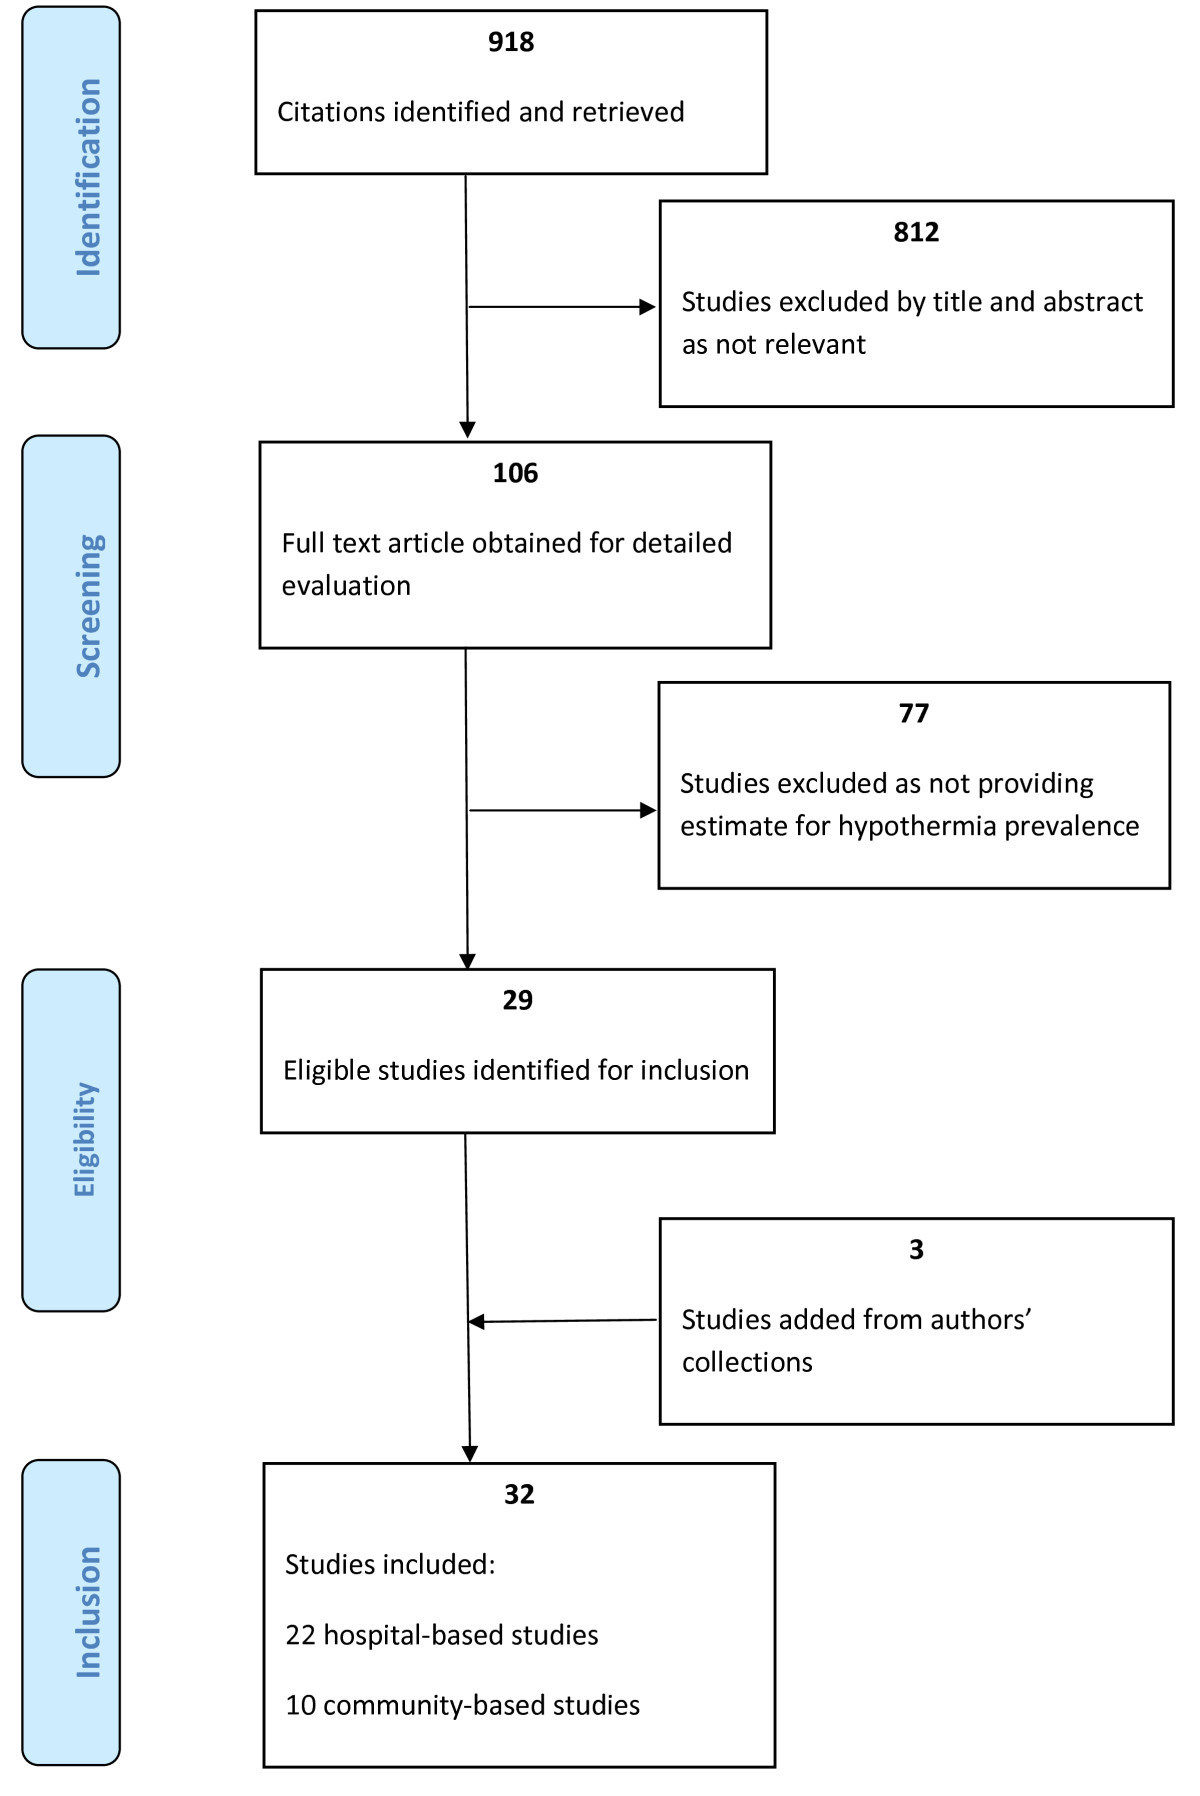 https://static-content.springer.com/image/art%3A10.1186%2F1741-7015-11-24/MediaObjects/12916_2012_Article_694_Fig1_HTML.jpg